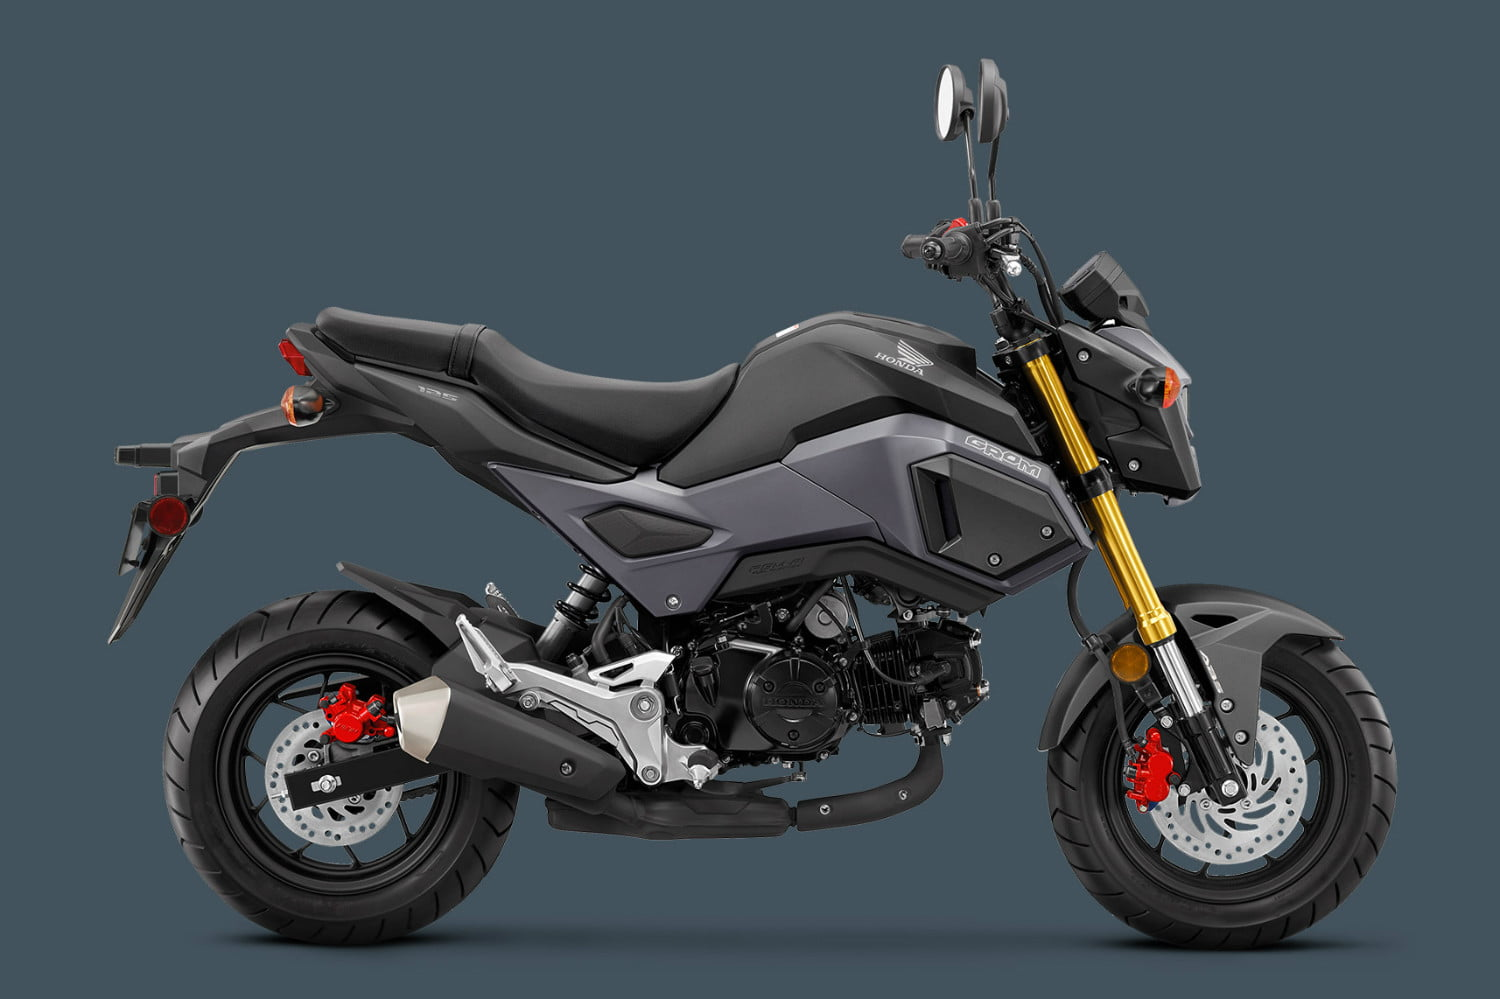 Honda Grom Price >> The 2018 Honda Grom Motorcycle Adds Abs As An Option